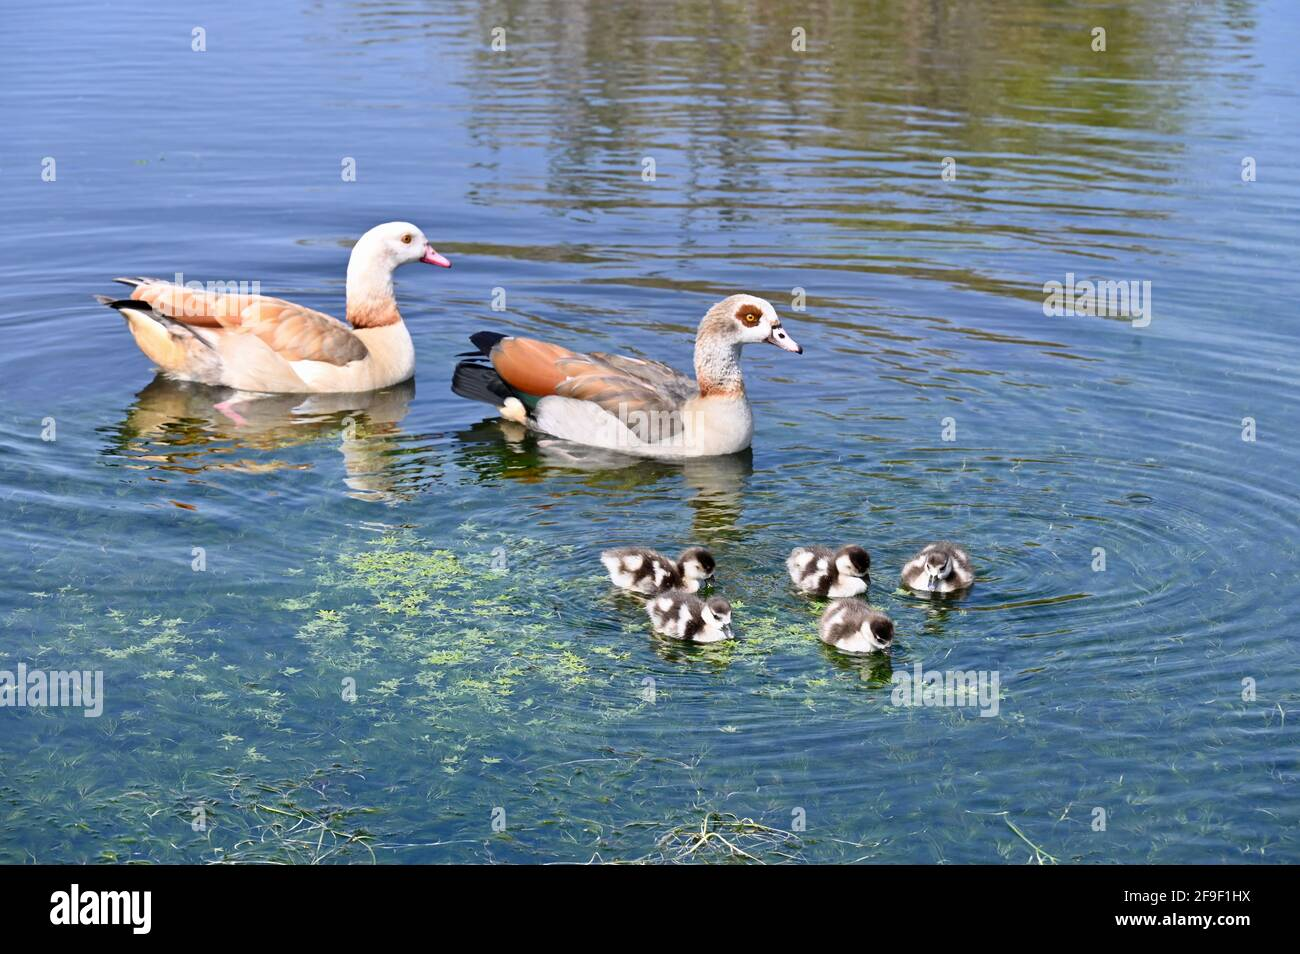 Kent. UK. A beautiful day with clear blue skies and temperatures reaching 13 degrees. Egyptian geese (Alopochen aegyptiaca) with goslings, River Cray, Foots Cray Meadows, Sidcup, Kent. UK Stock Photo